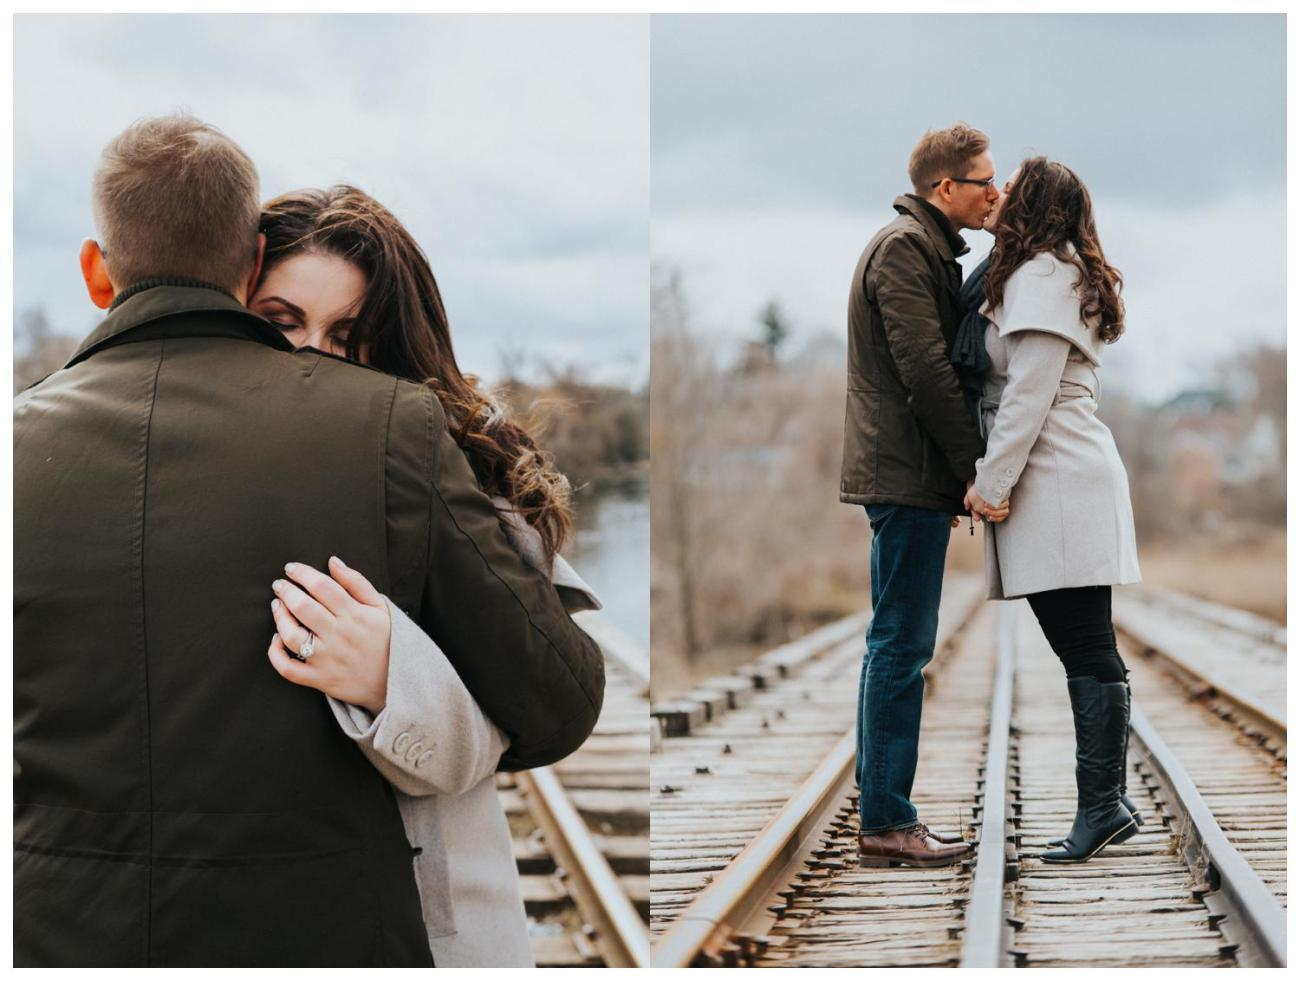 Train Tracks | Engagement Inspiration | Cambridge Winter Engagement